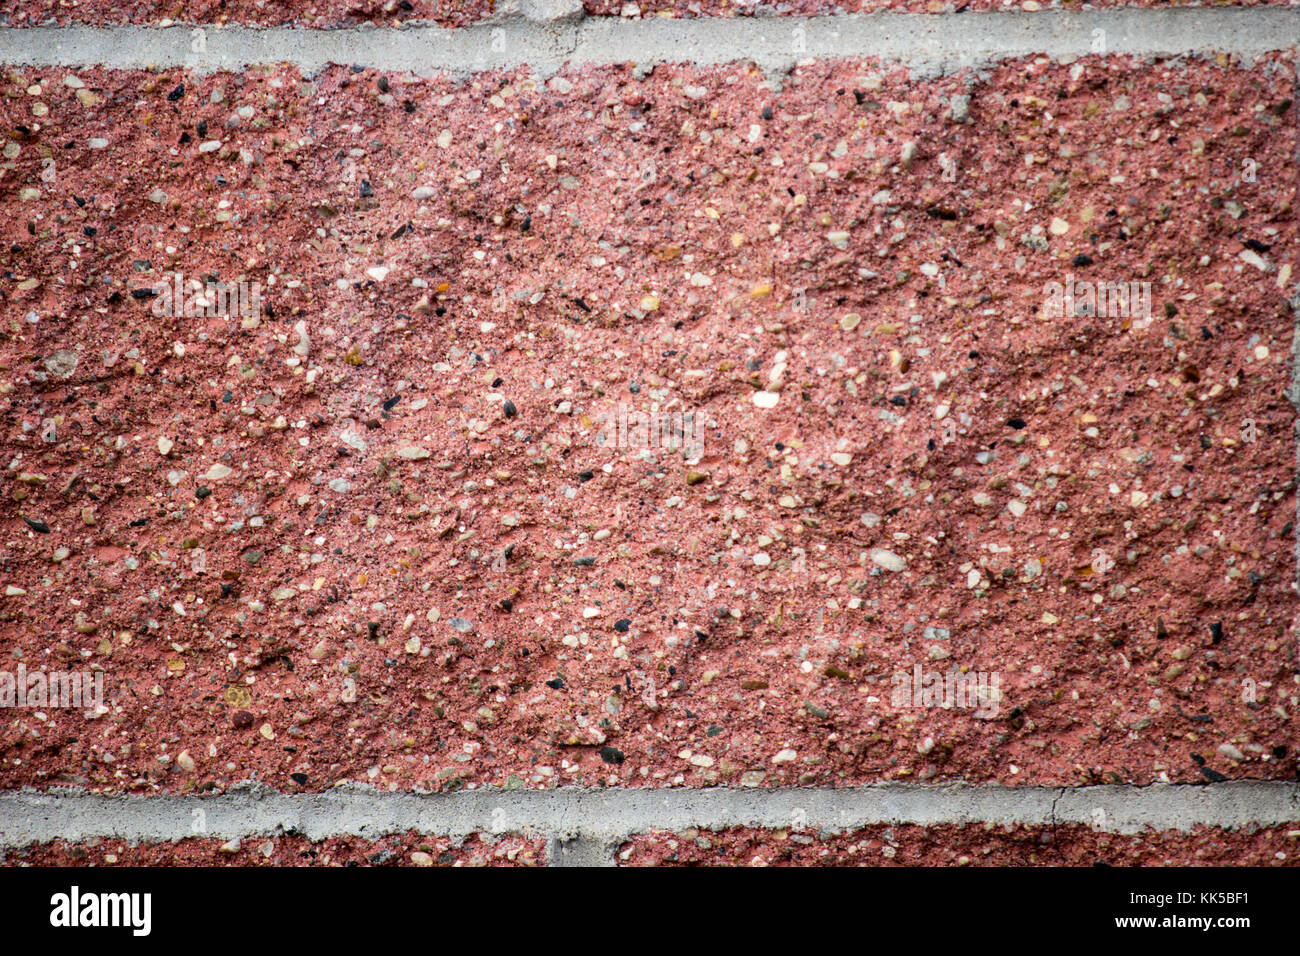 close up detail of red brick or stone and white mortar - Stock Image